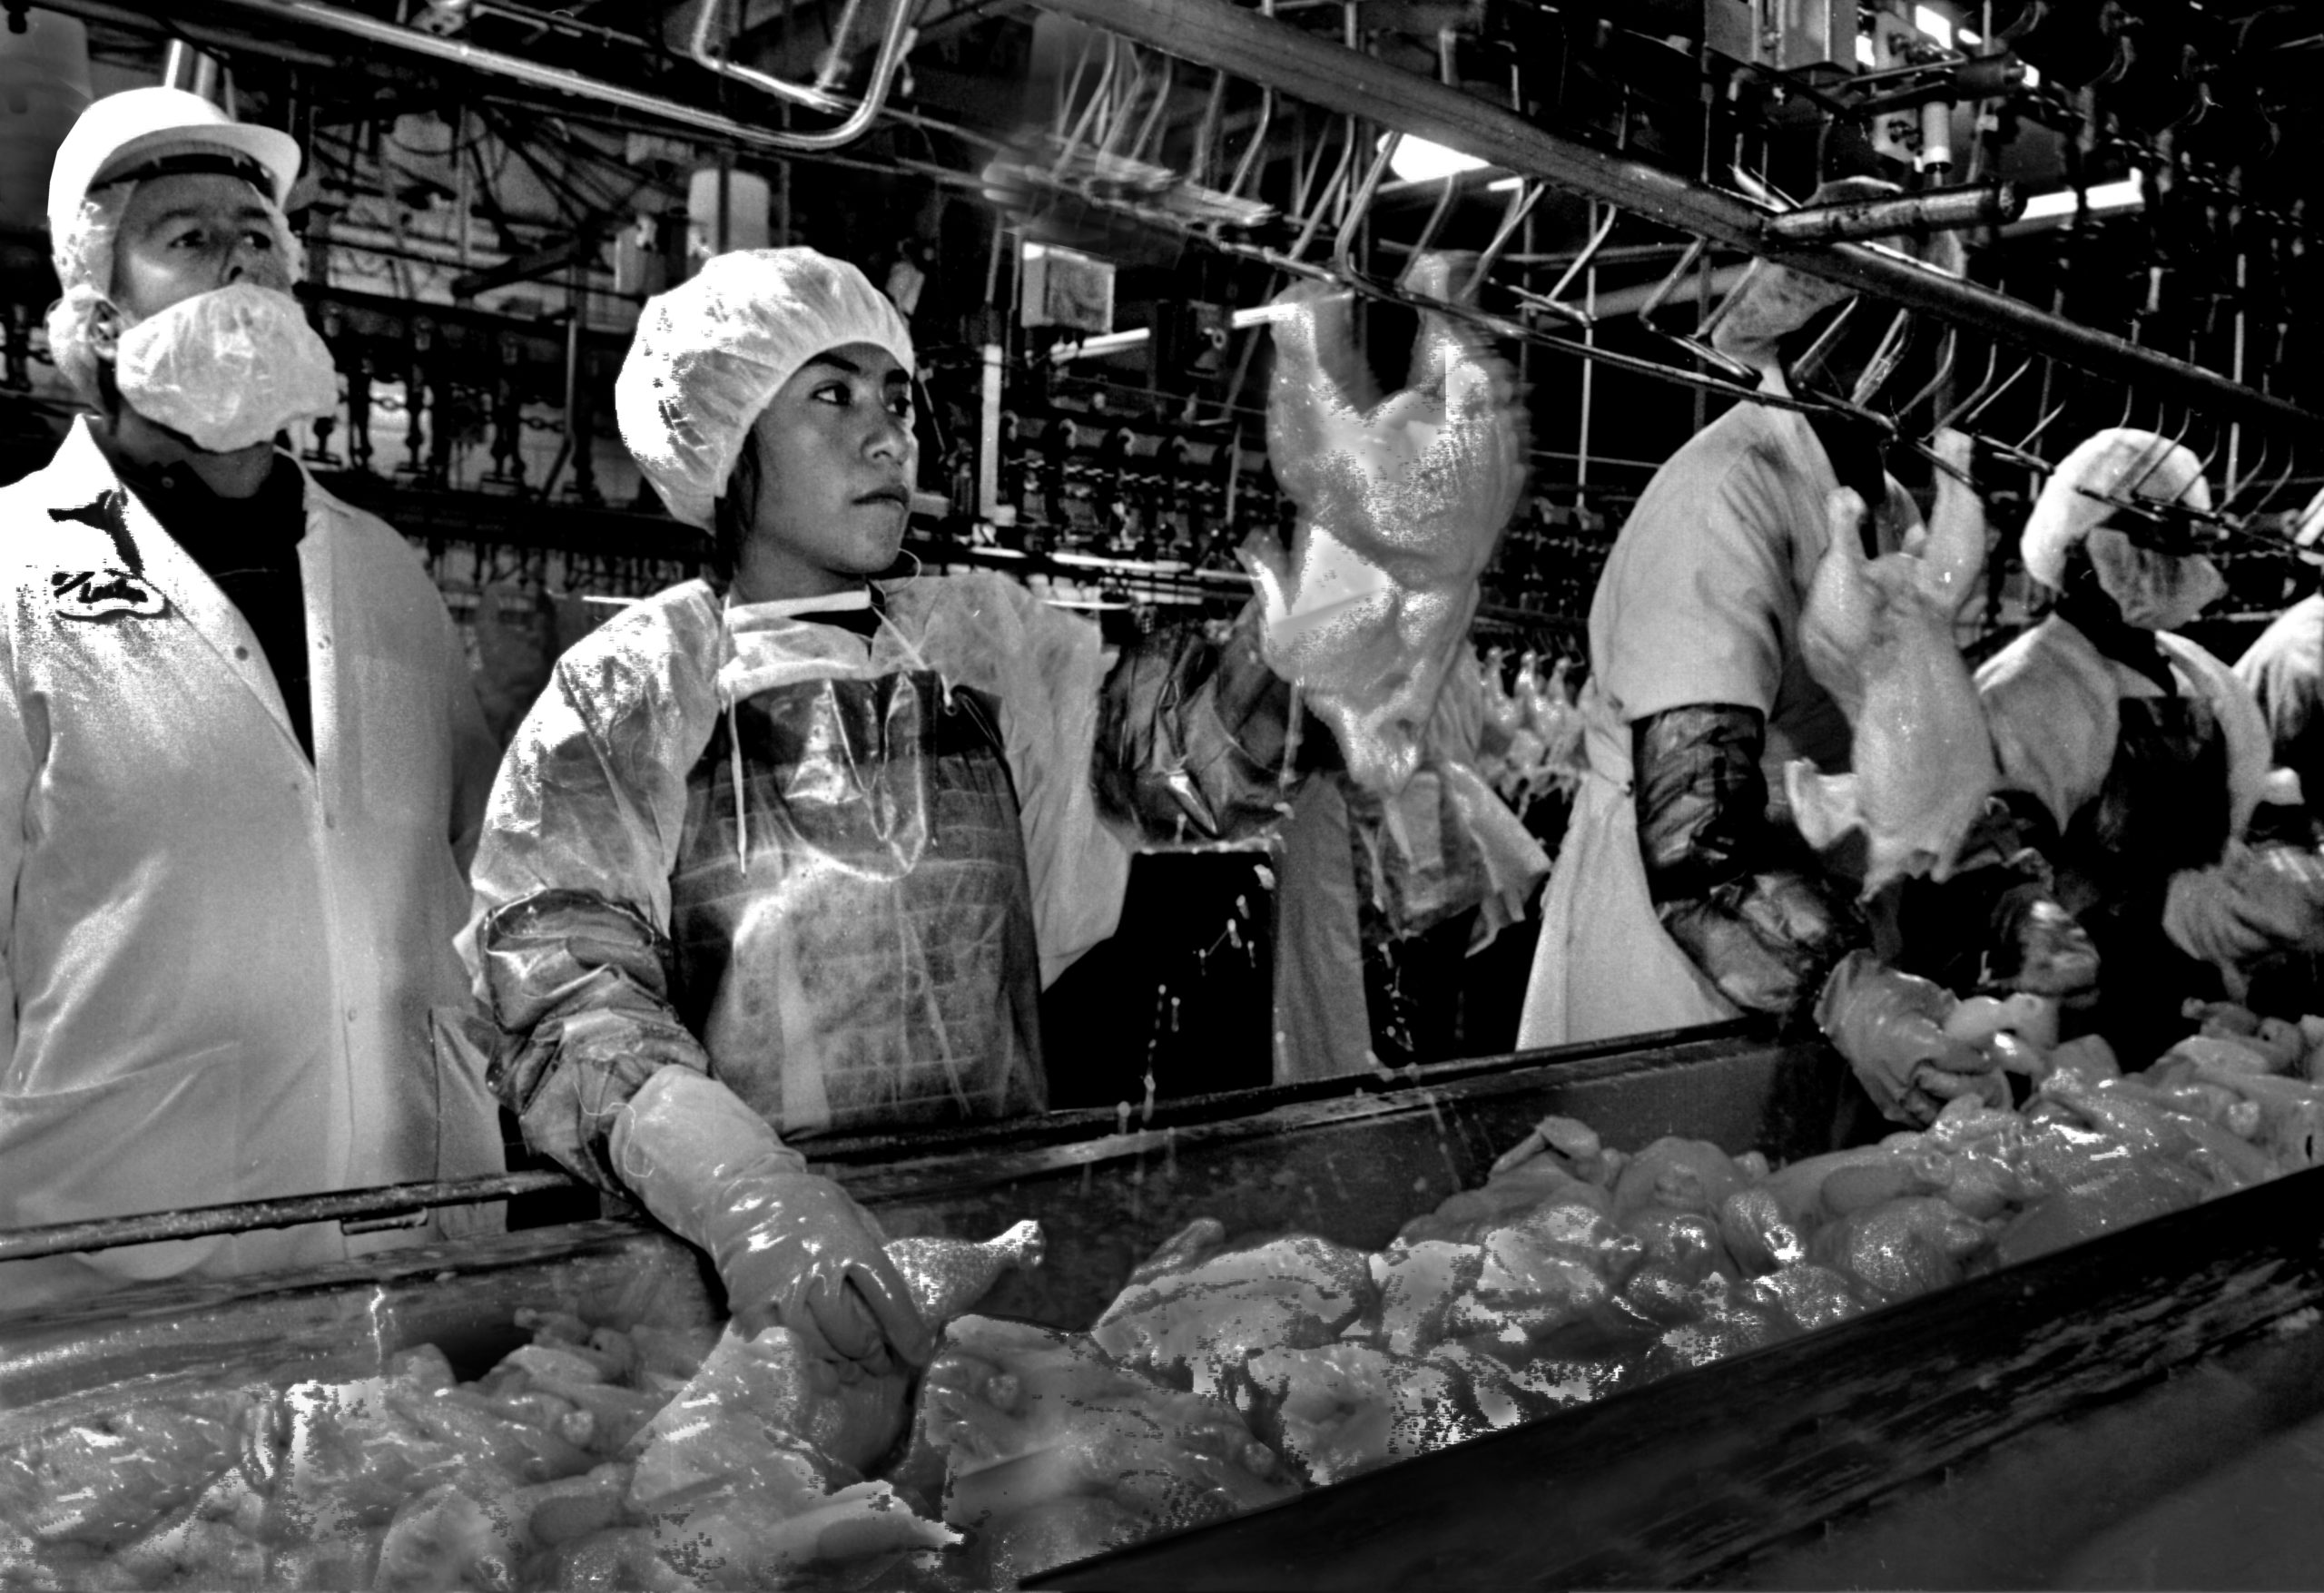 Black and white photo of workers on a poultry processing line.